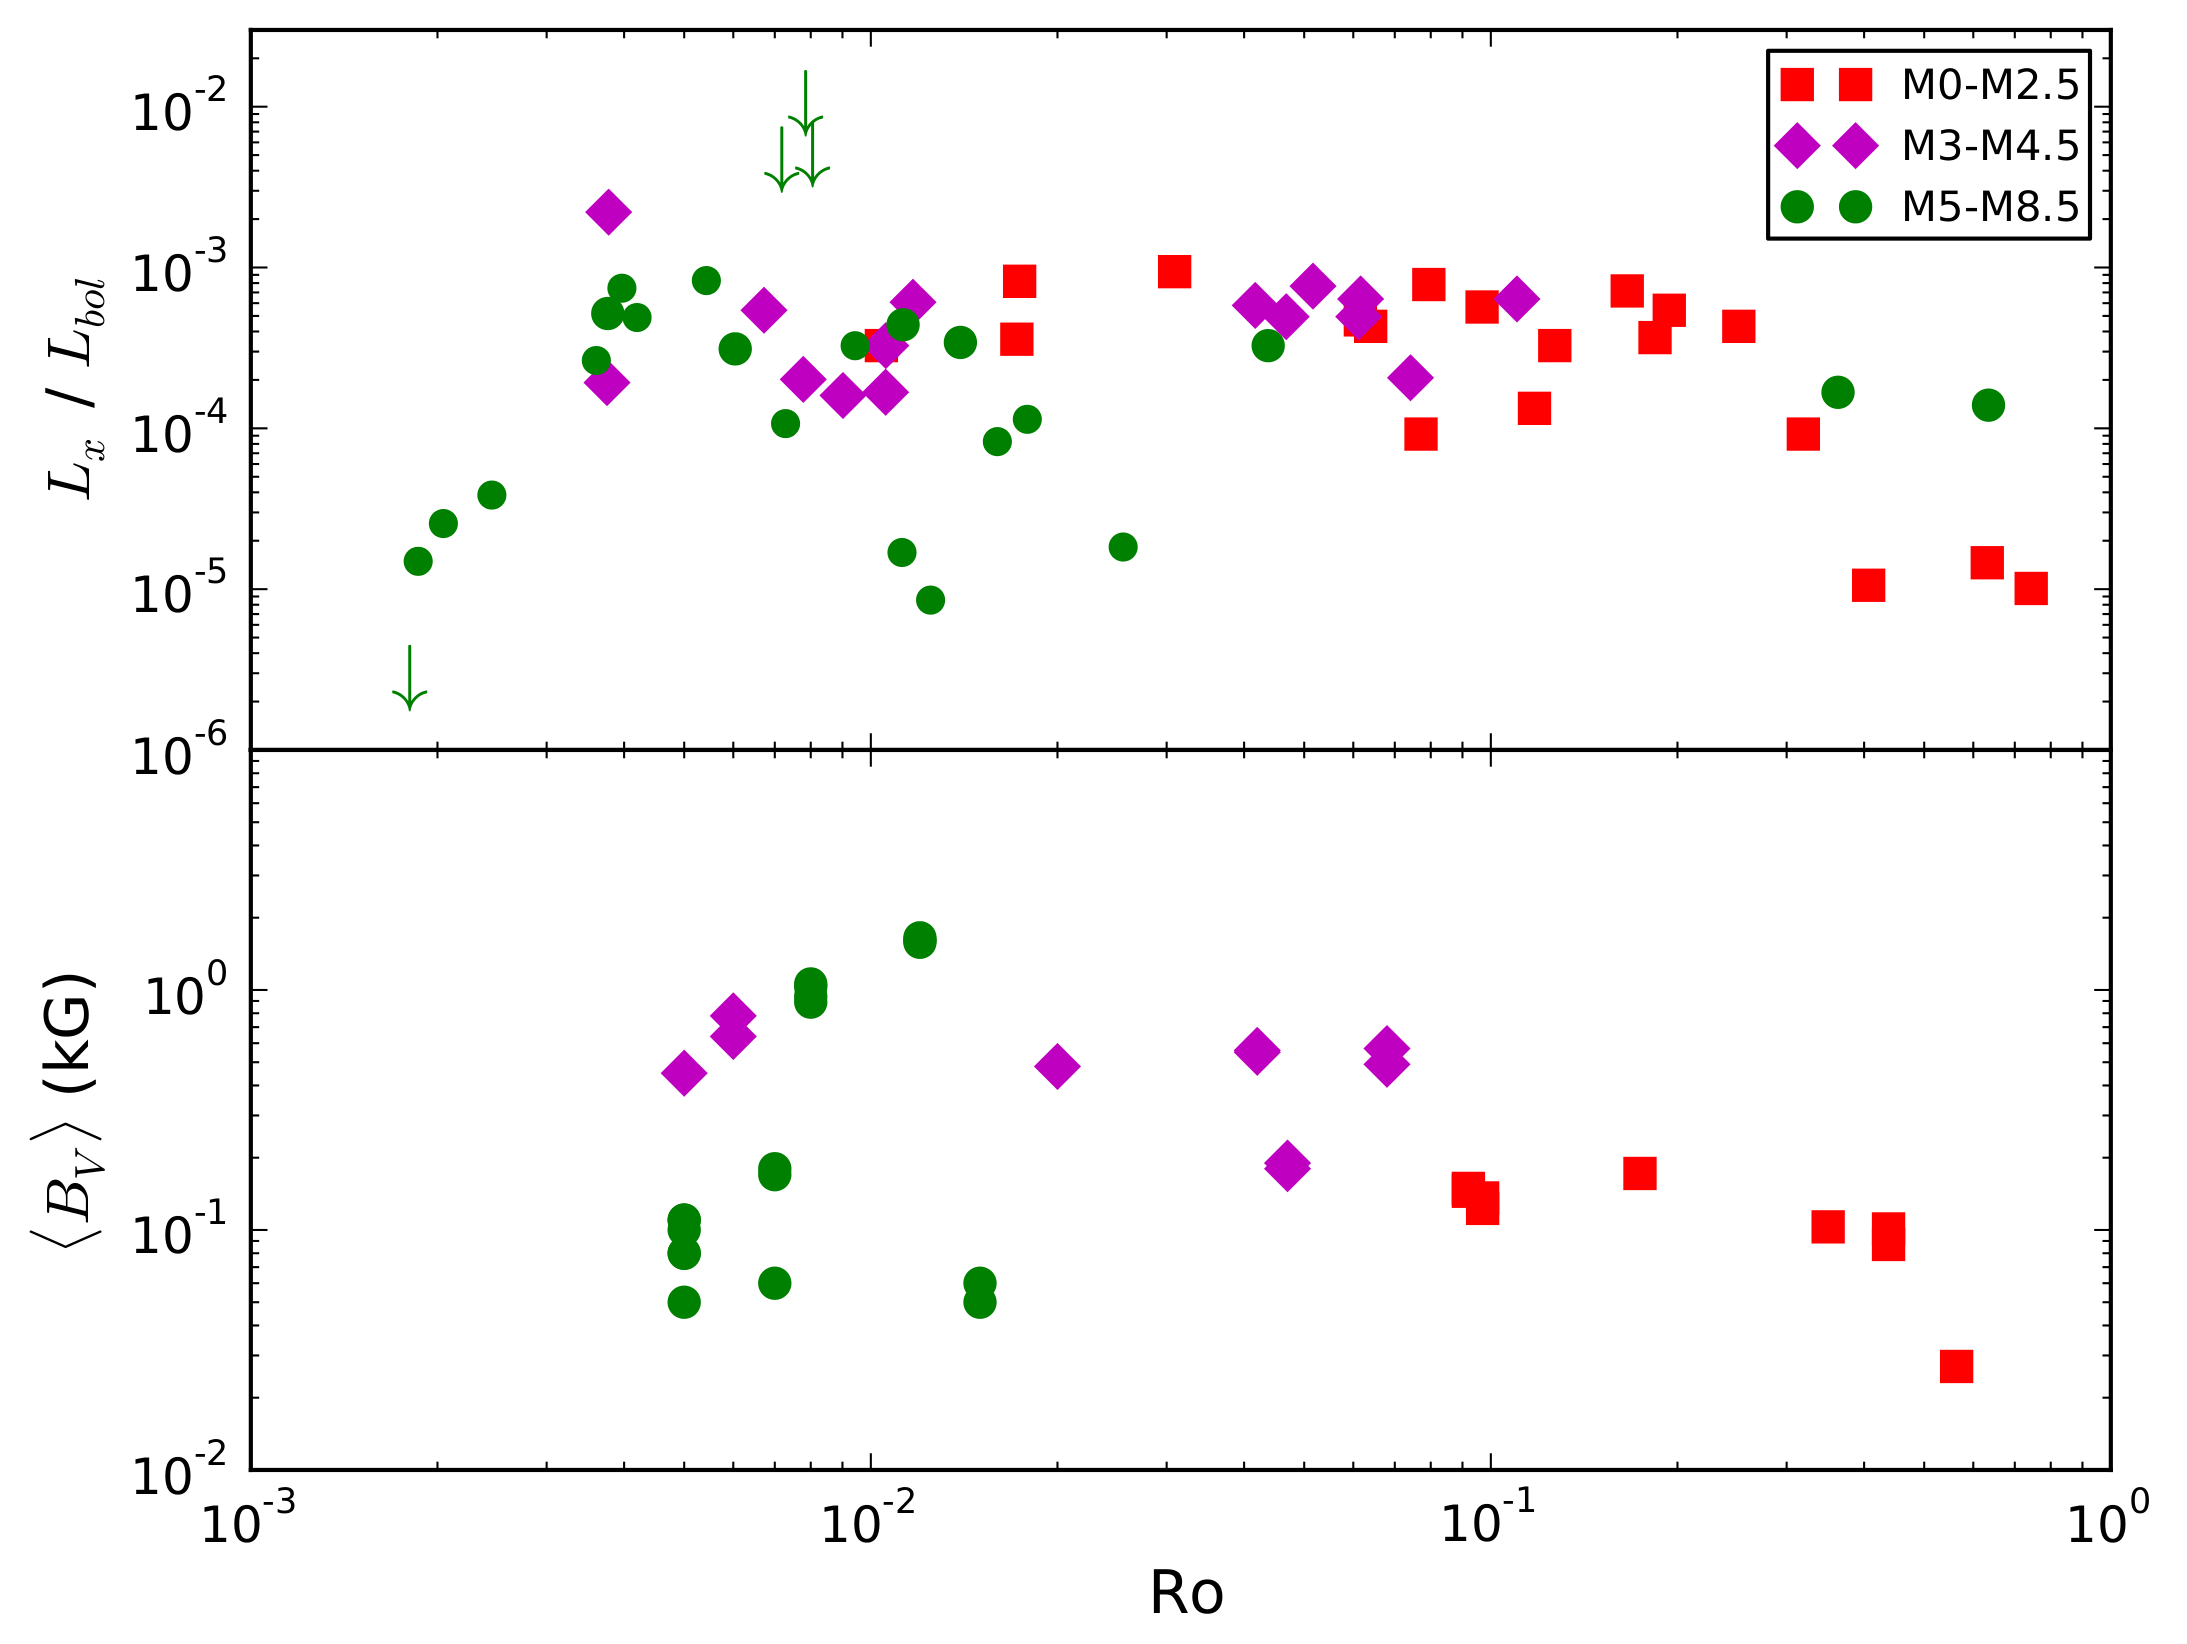 X-rays and magnetic field versus rotation. There's scatter, but the general trends in the two parameters (derived from very different means) are surprisingly similar. From [1310.6758](http://arxiv.org/abs/1310.6758).